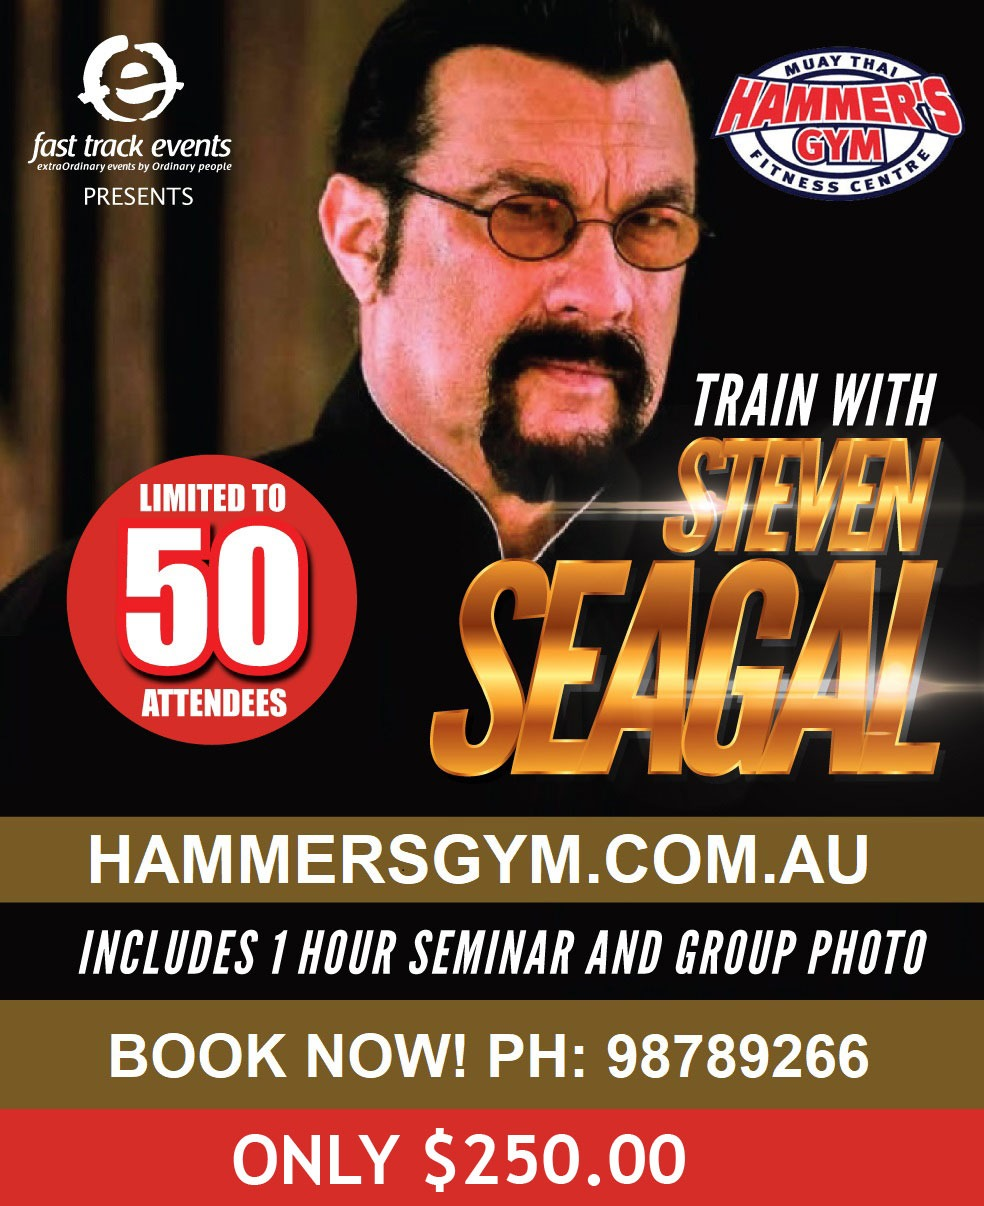 Steven Seagal at Hammers Gym (Only $250.00) 1